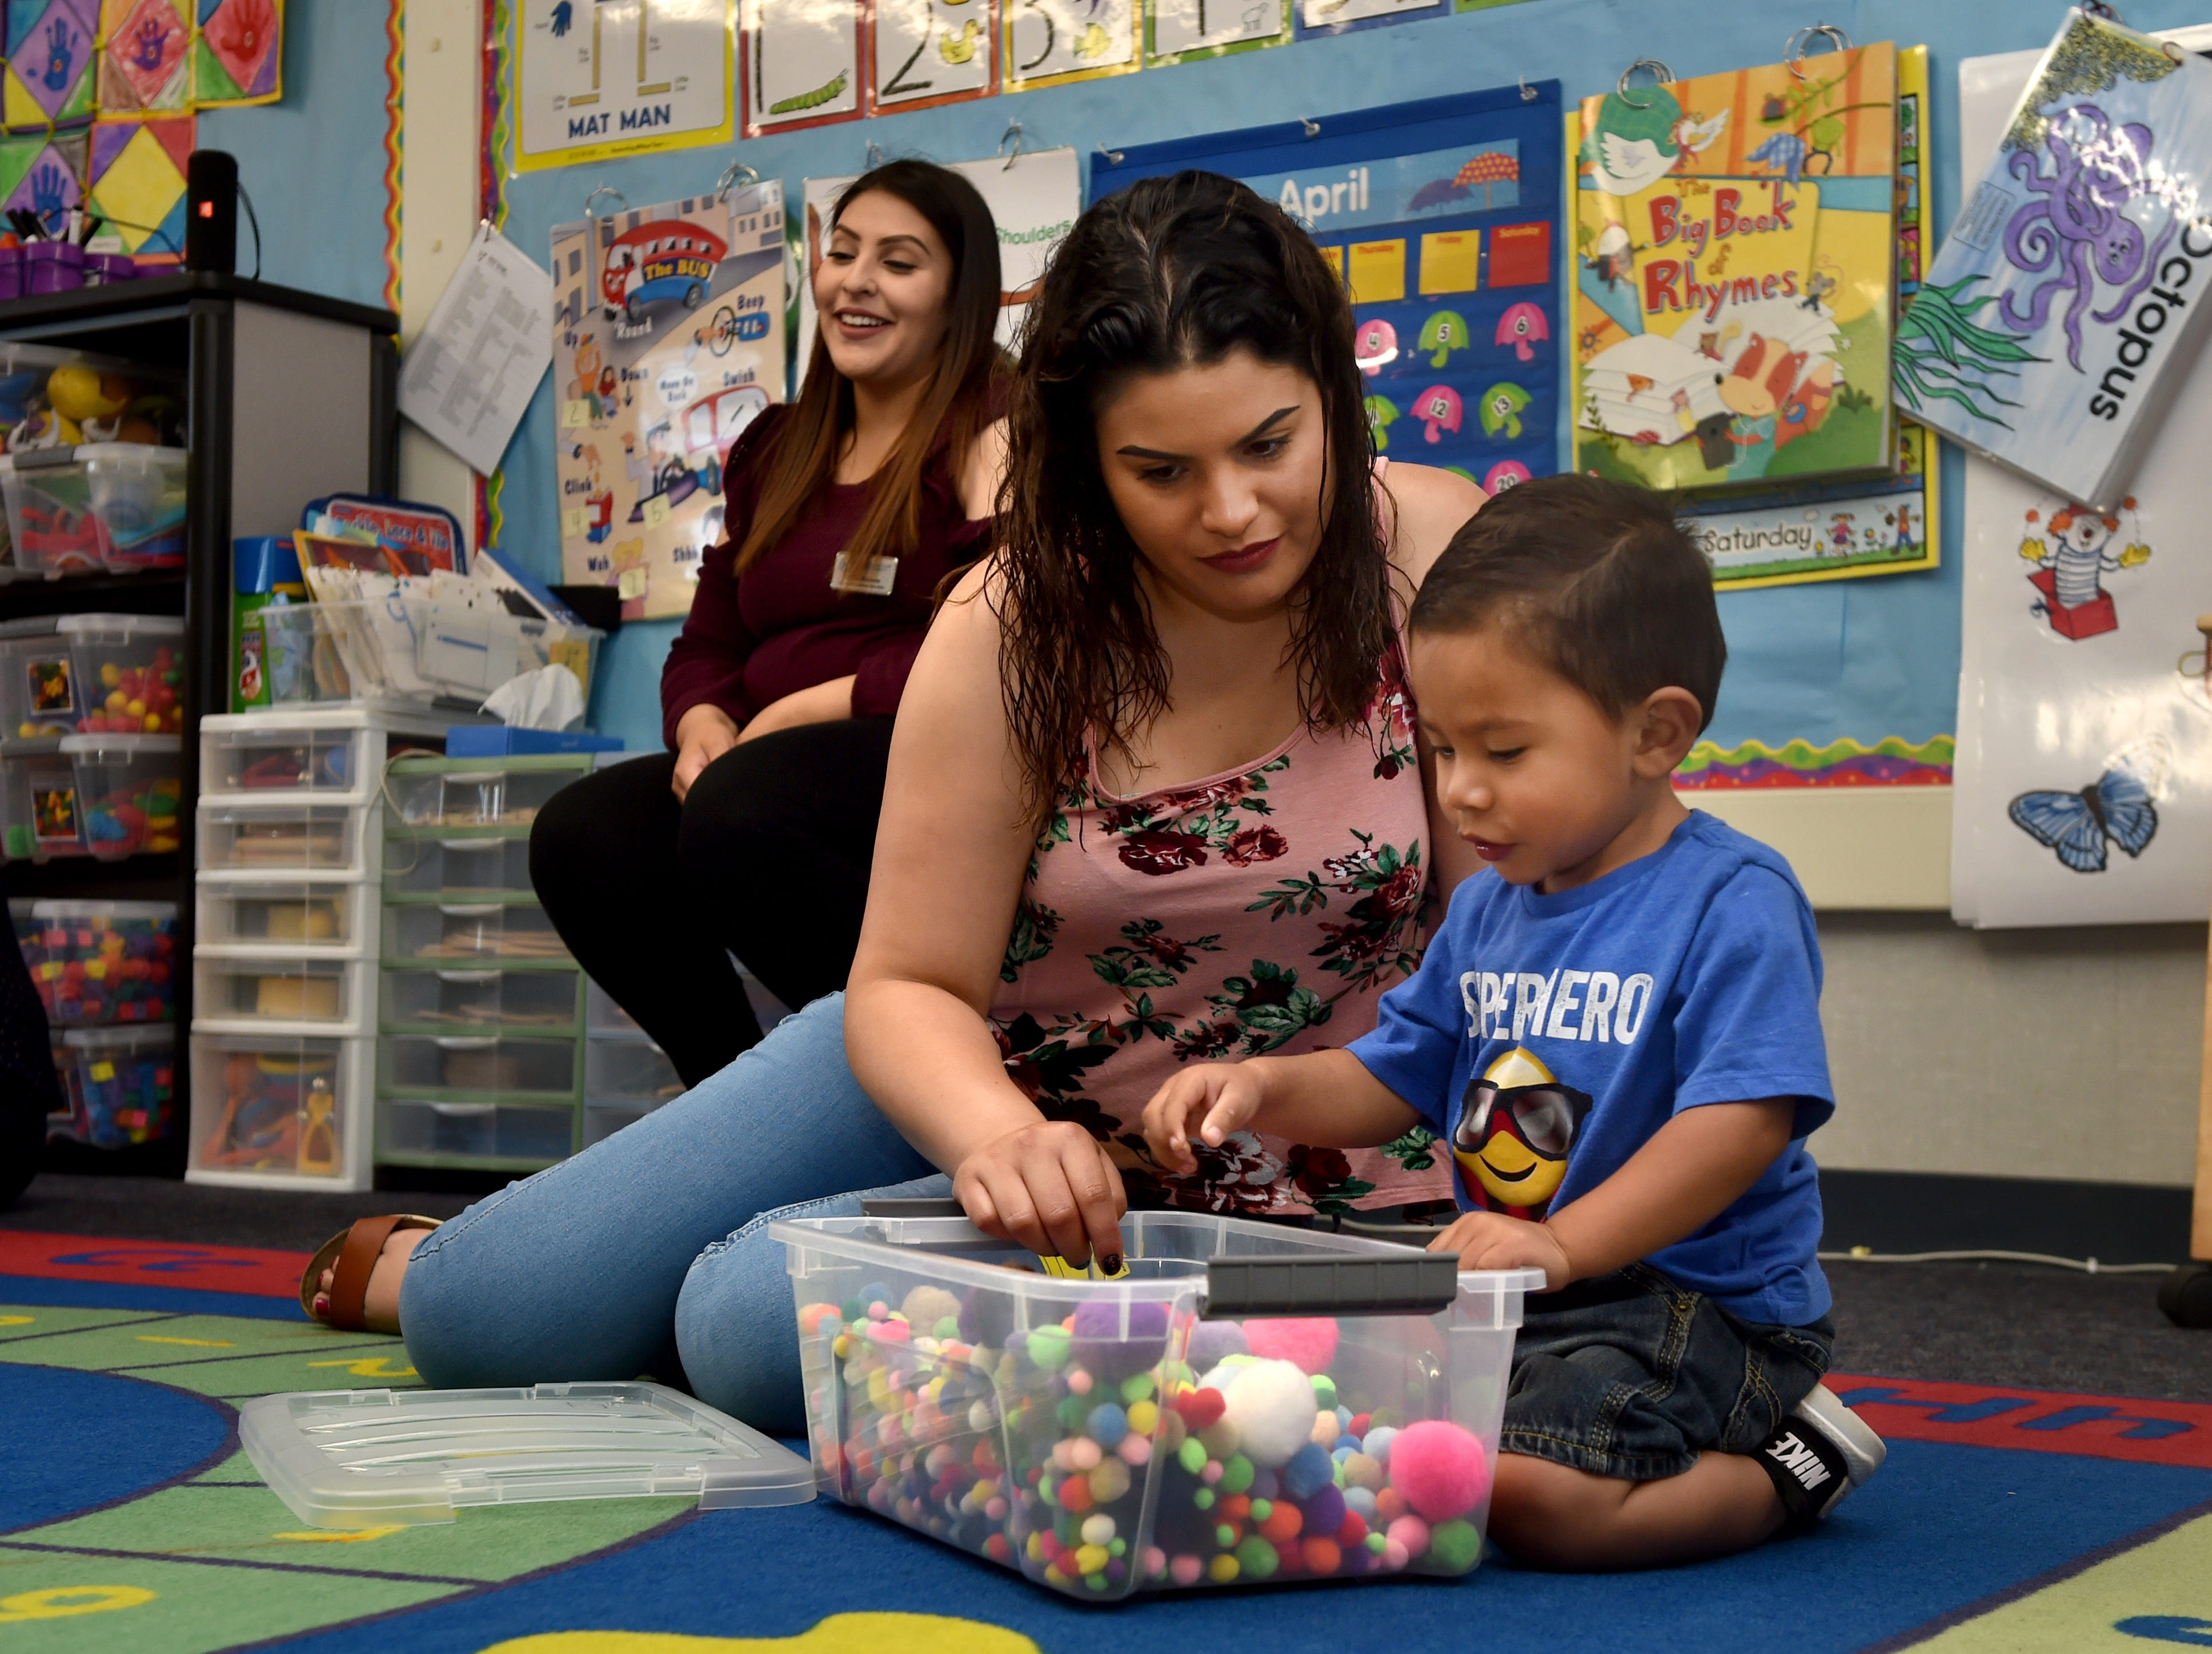 Alondra Lopez and her son Maximilio Sanchez play with colorful balls during a First 5 Neighborhoods for Learning class at Hathaway Elementary School in Oxnard on April 23.